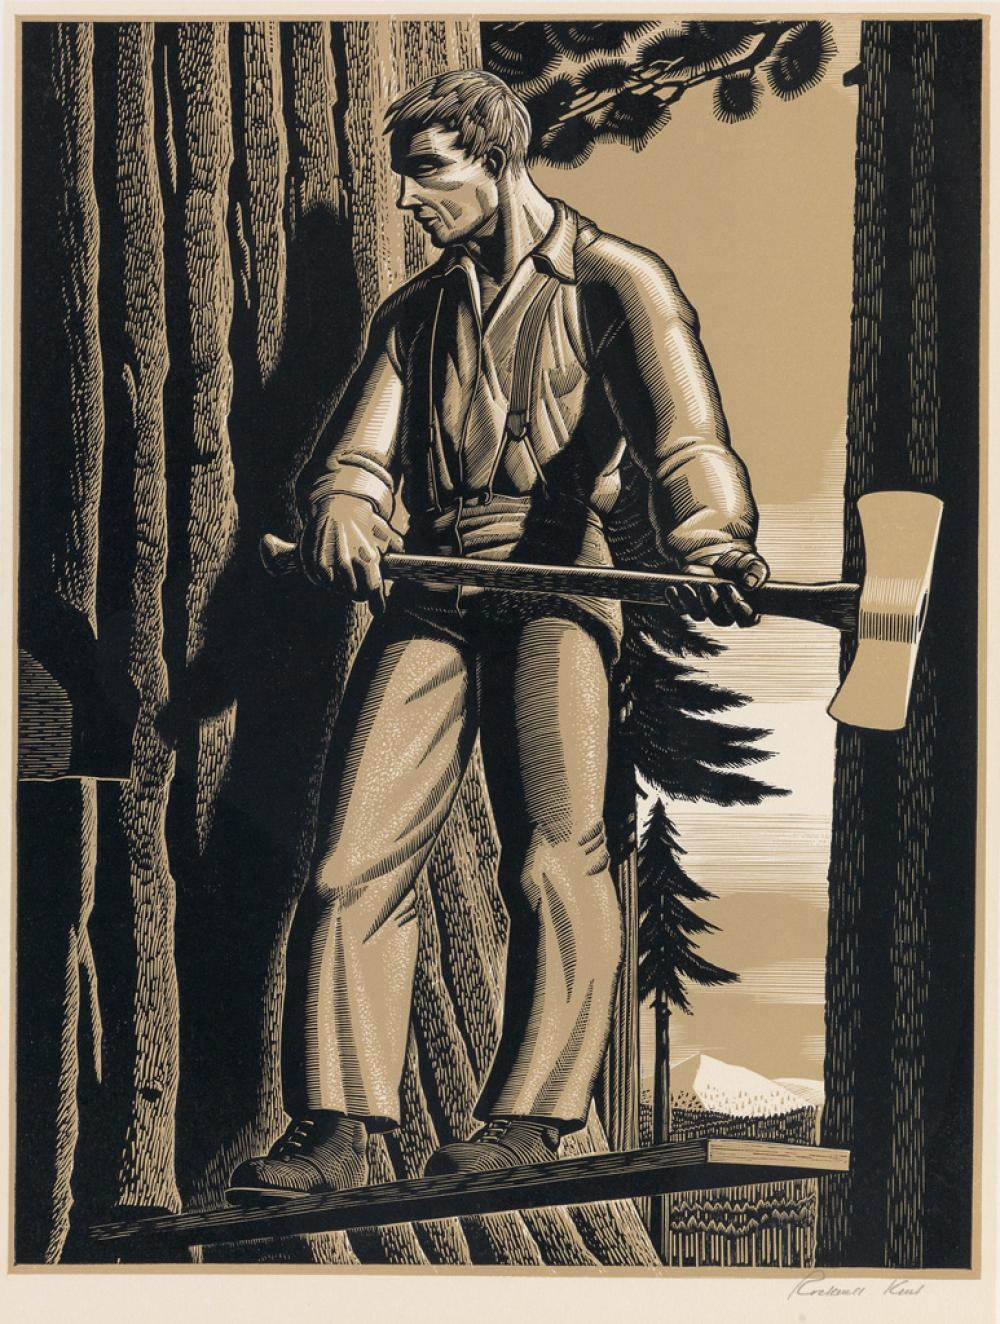 Sold Price: Rockwell Kent wood engraving - February 6